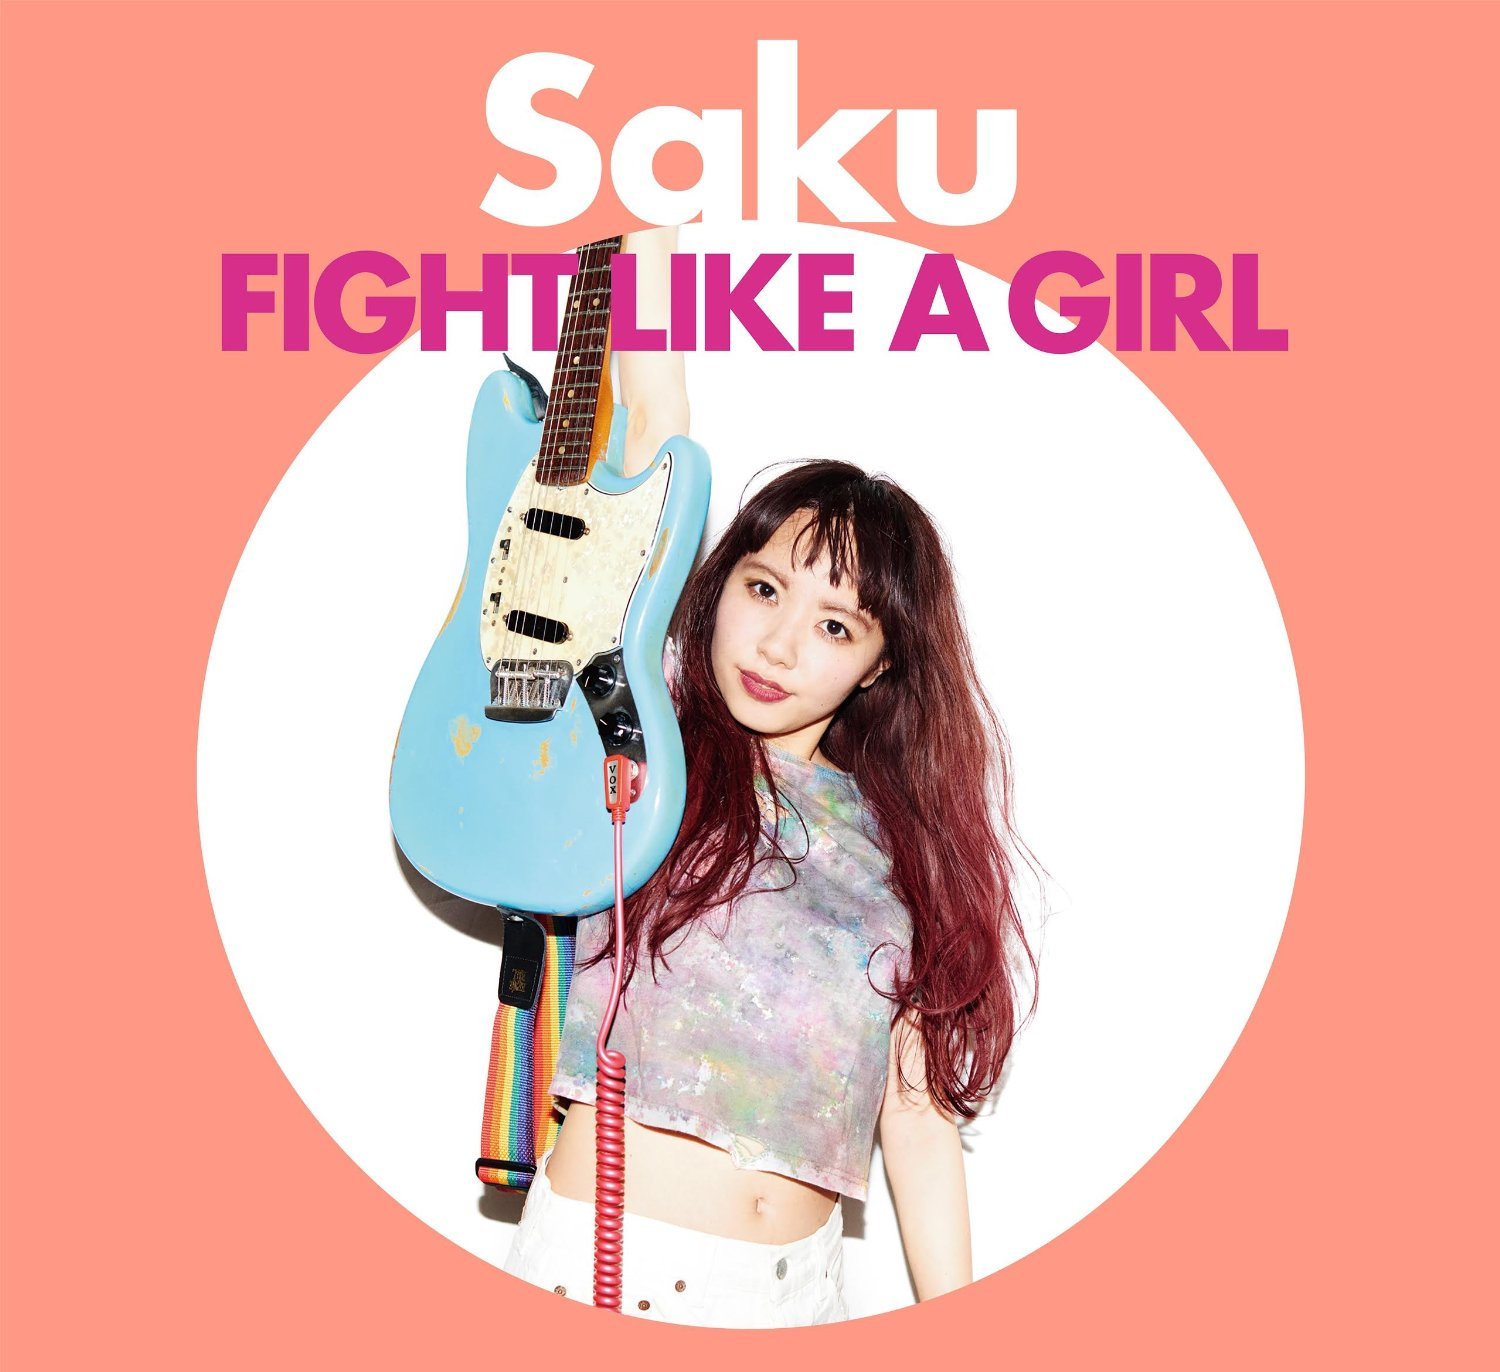 20190121.1915.07 Saku - Fight like a girl cover.jpg